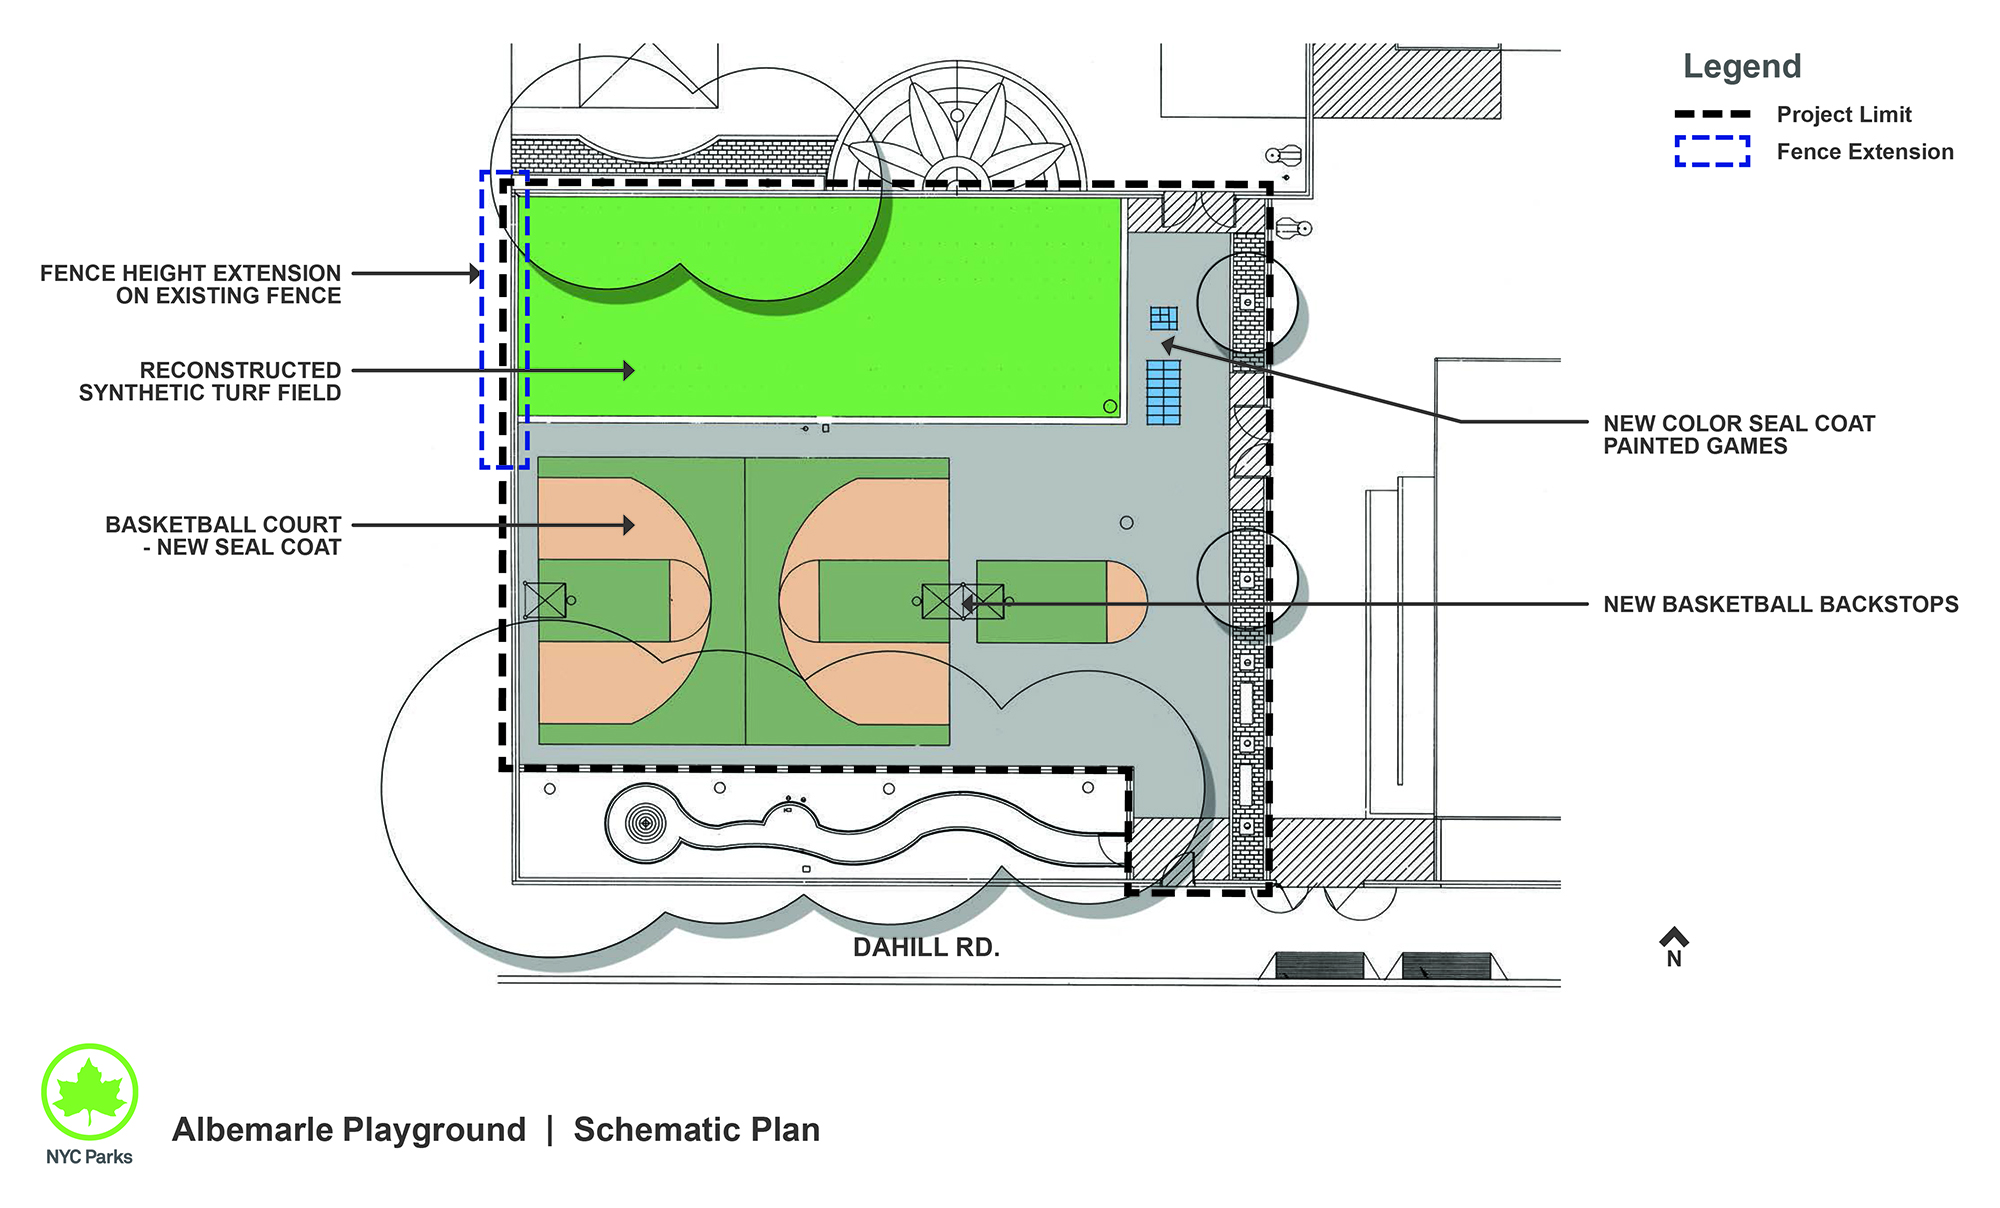 Design of Albemarle Playground Synthetic Turf Field and Basketball Court Reconstruction